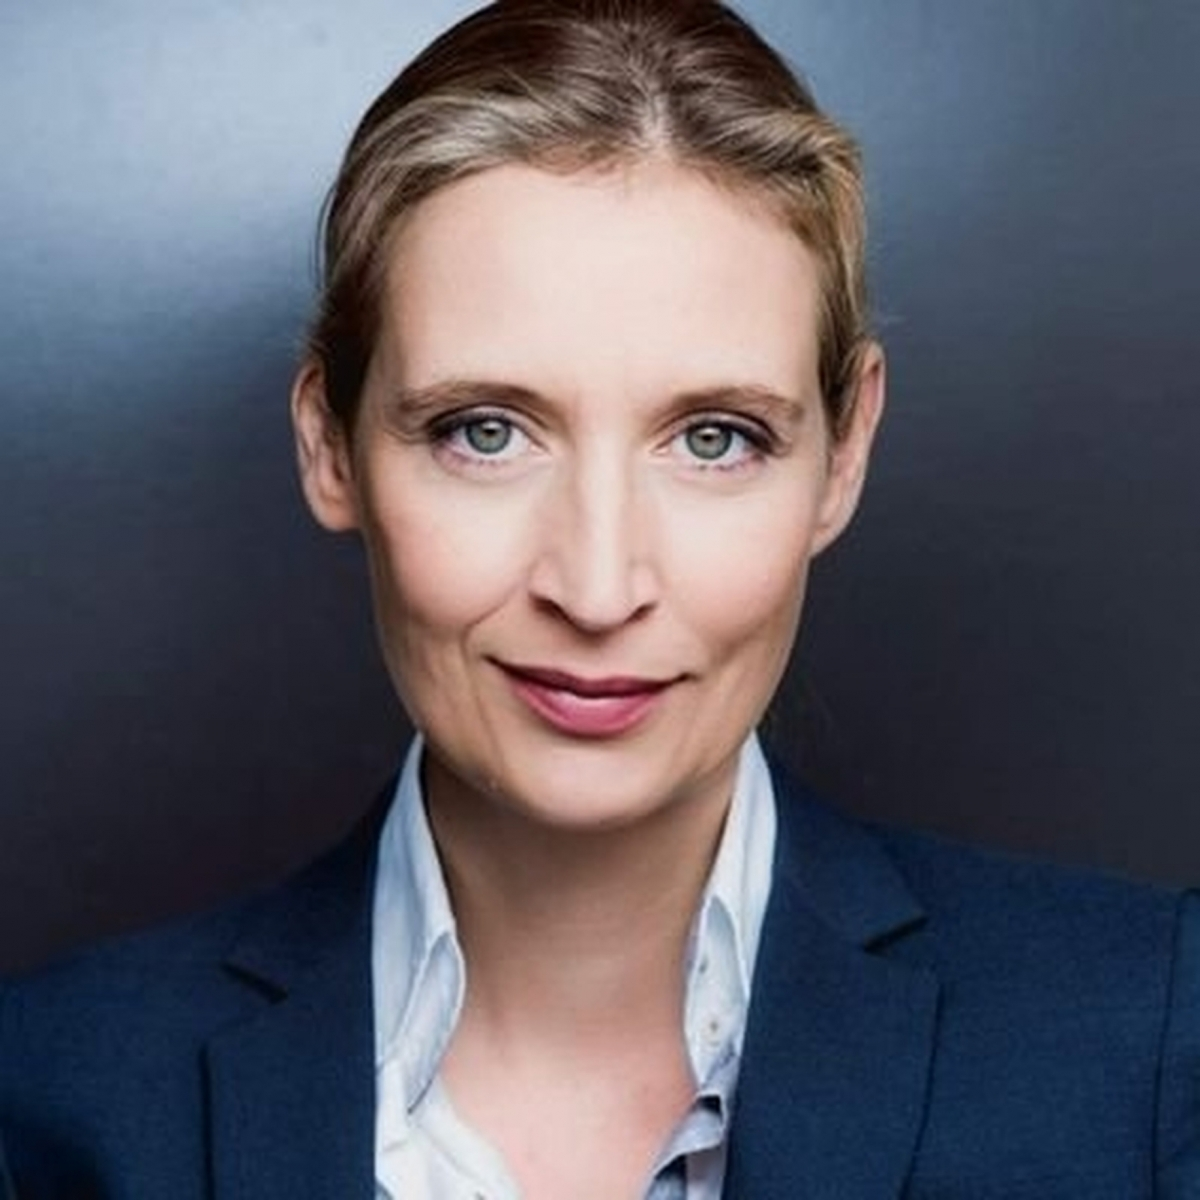 Bild/Quelle/Screenshot https://twitter.com/Alice_Weidel